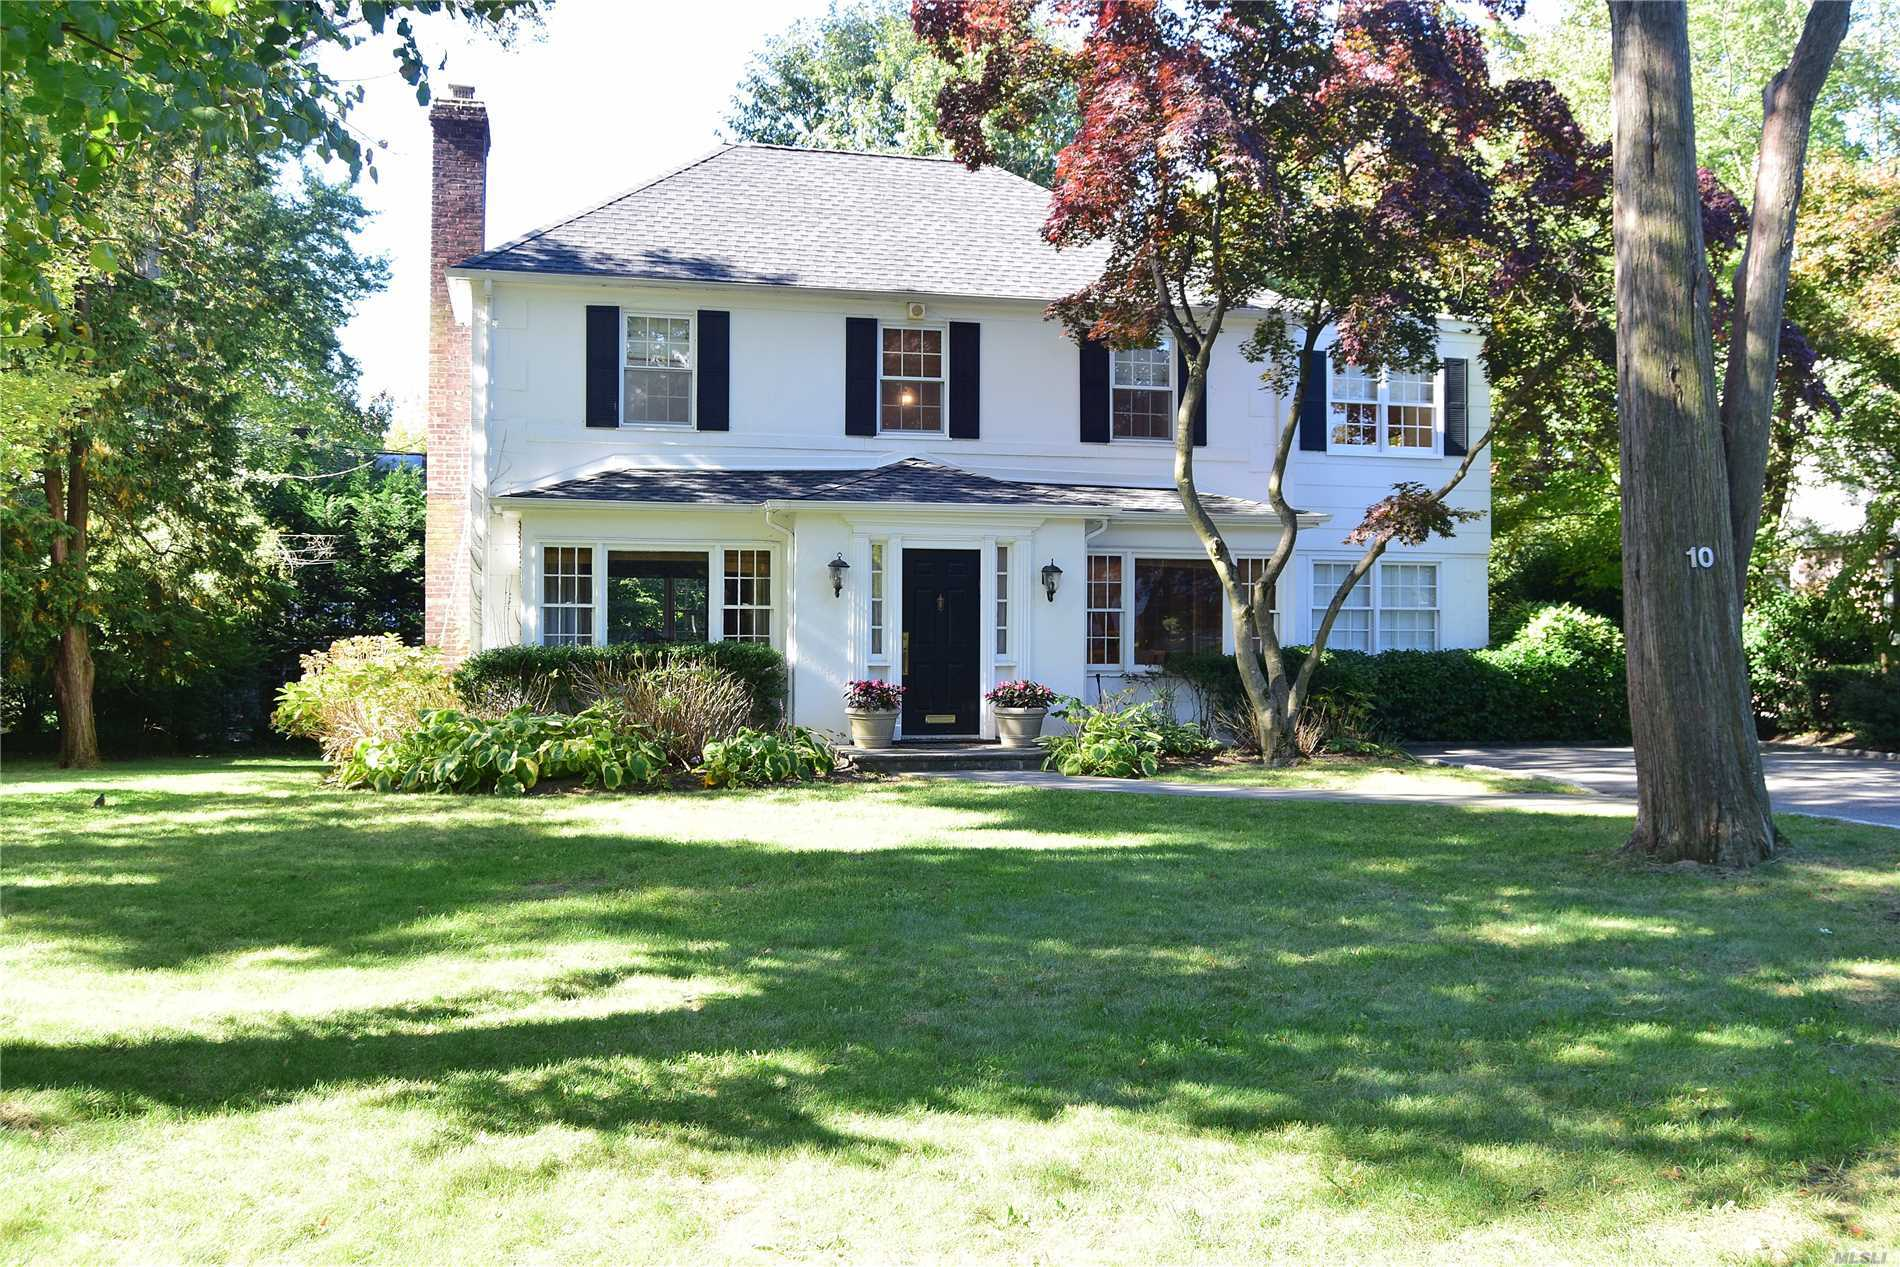 Photo of home for sale at 10 Brookbridge Rd, Great Neck NY